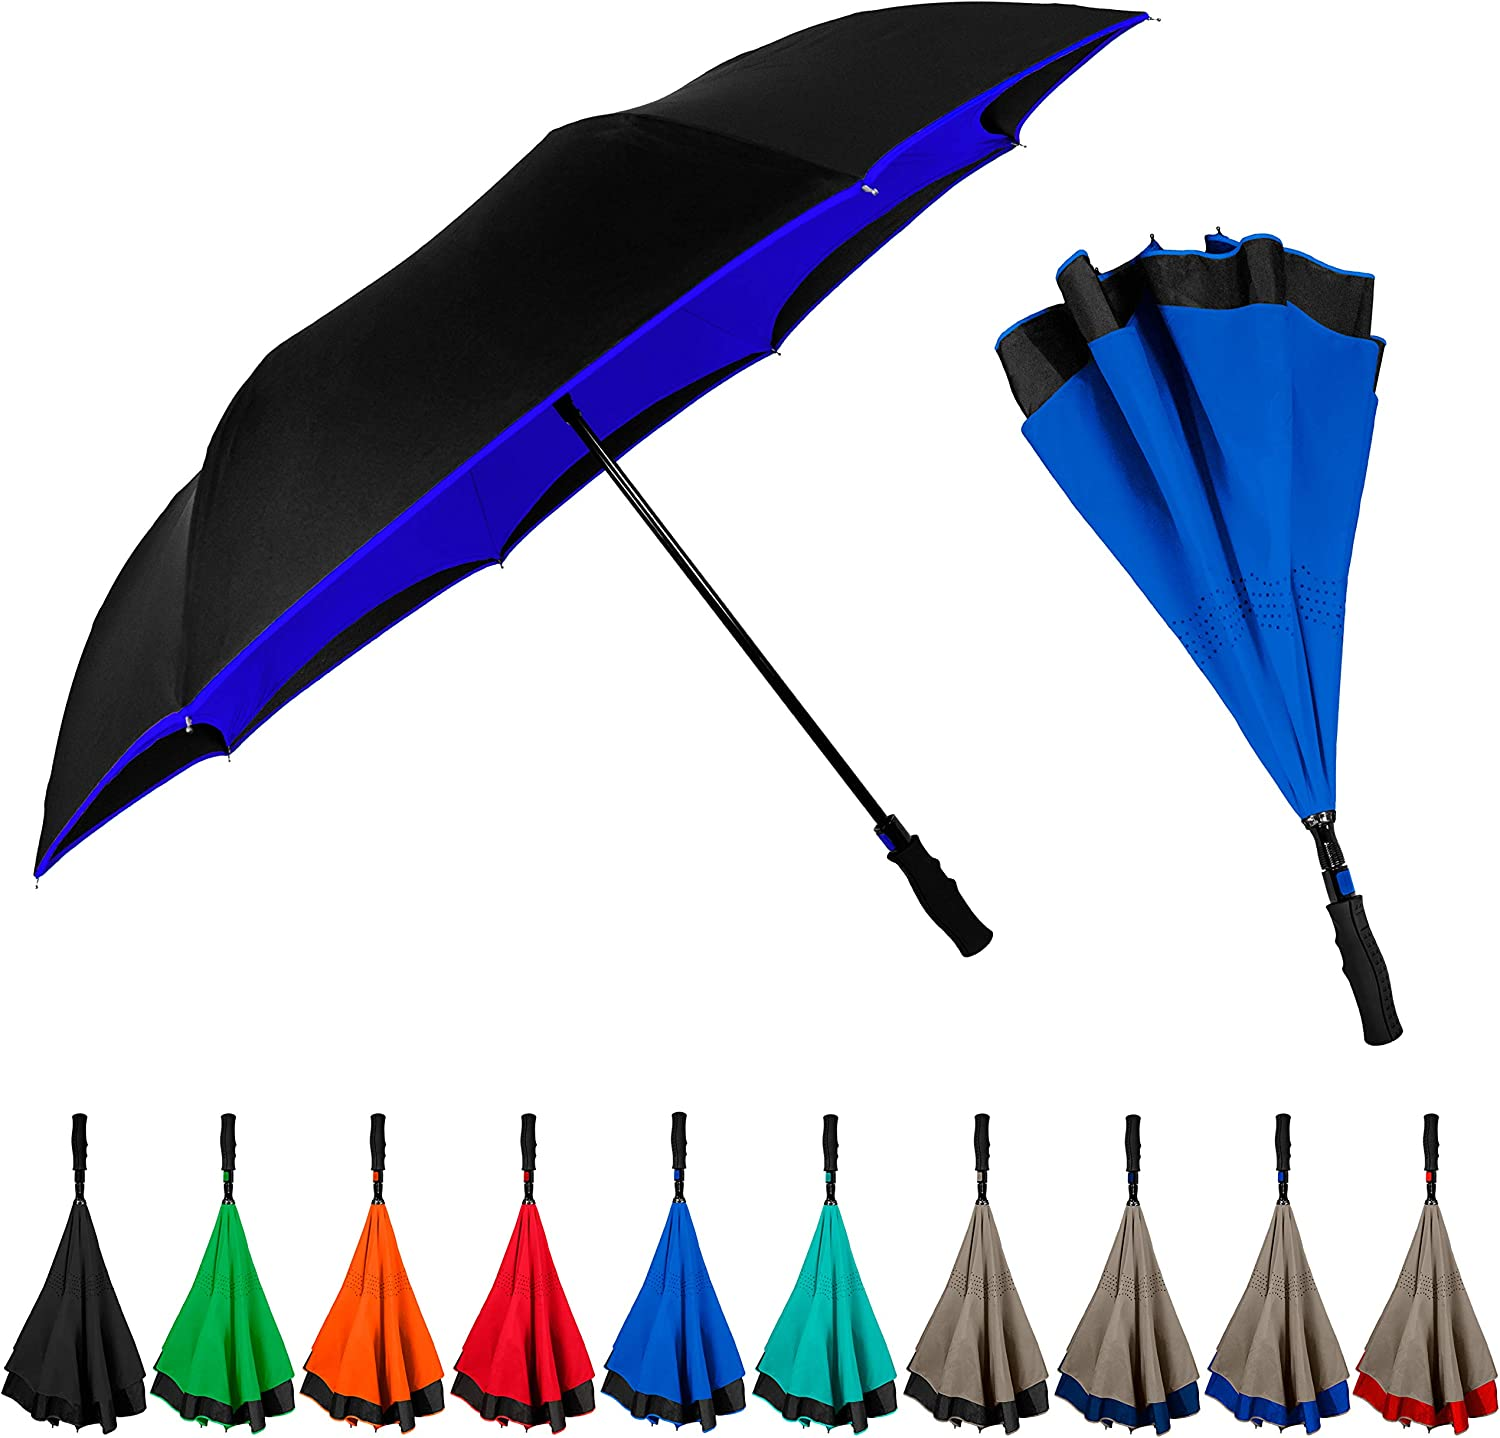 Double Layer Inverted Inverted Umbrella Is Light And Sturdy Pattern Slices Cheese On Blue Reverse Umbrella And Windproof Umbrella Edge Night Reflecti